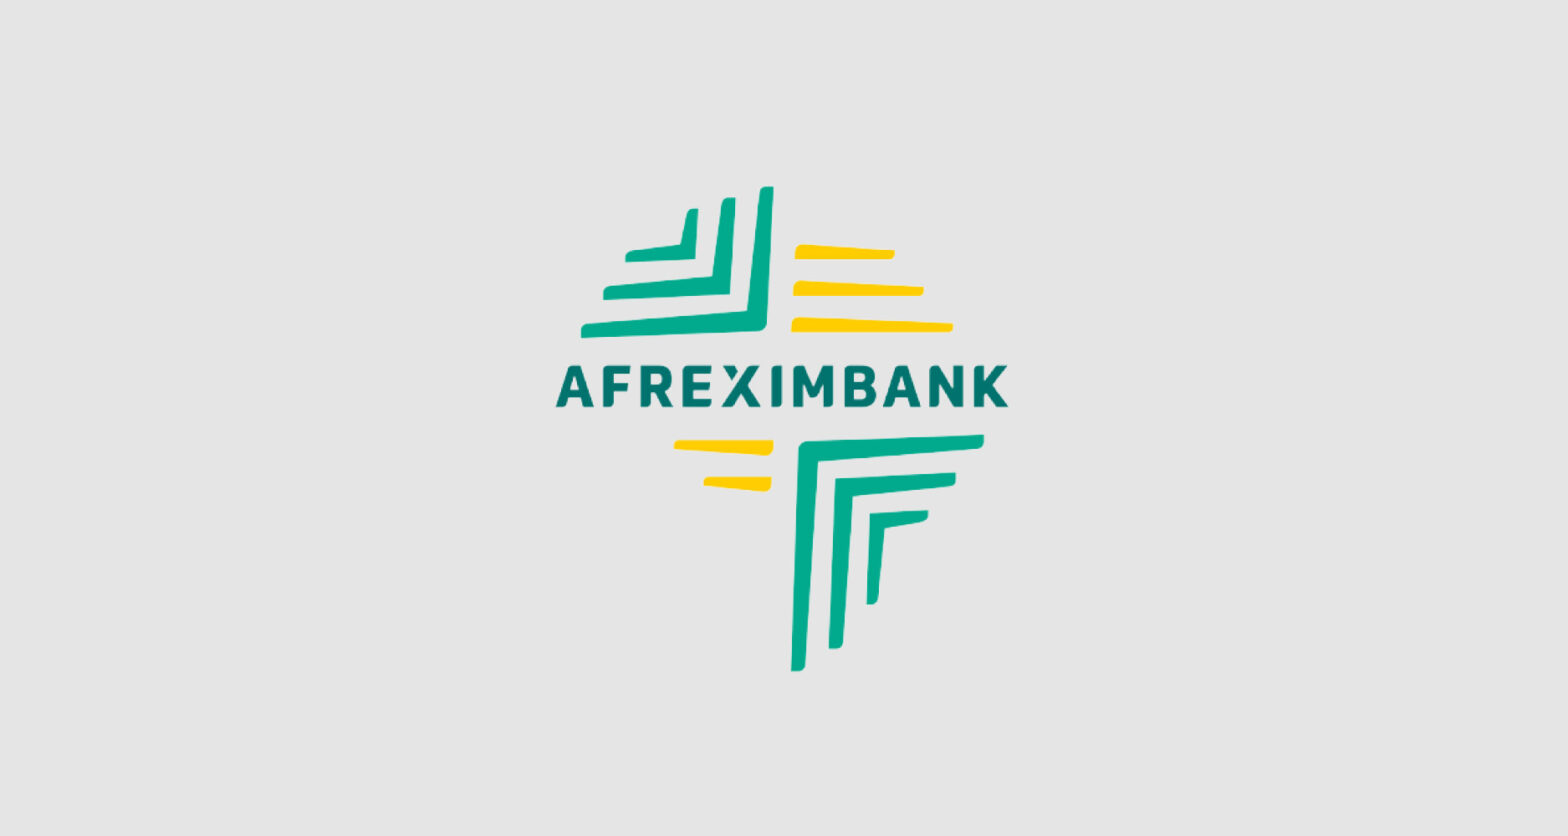 Afreximbank wins Debt Deal of the Year Award at The African Banker Awards 2020